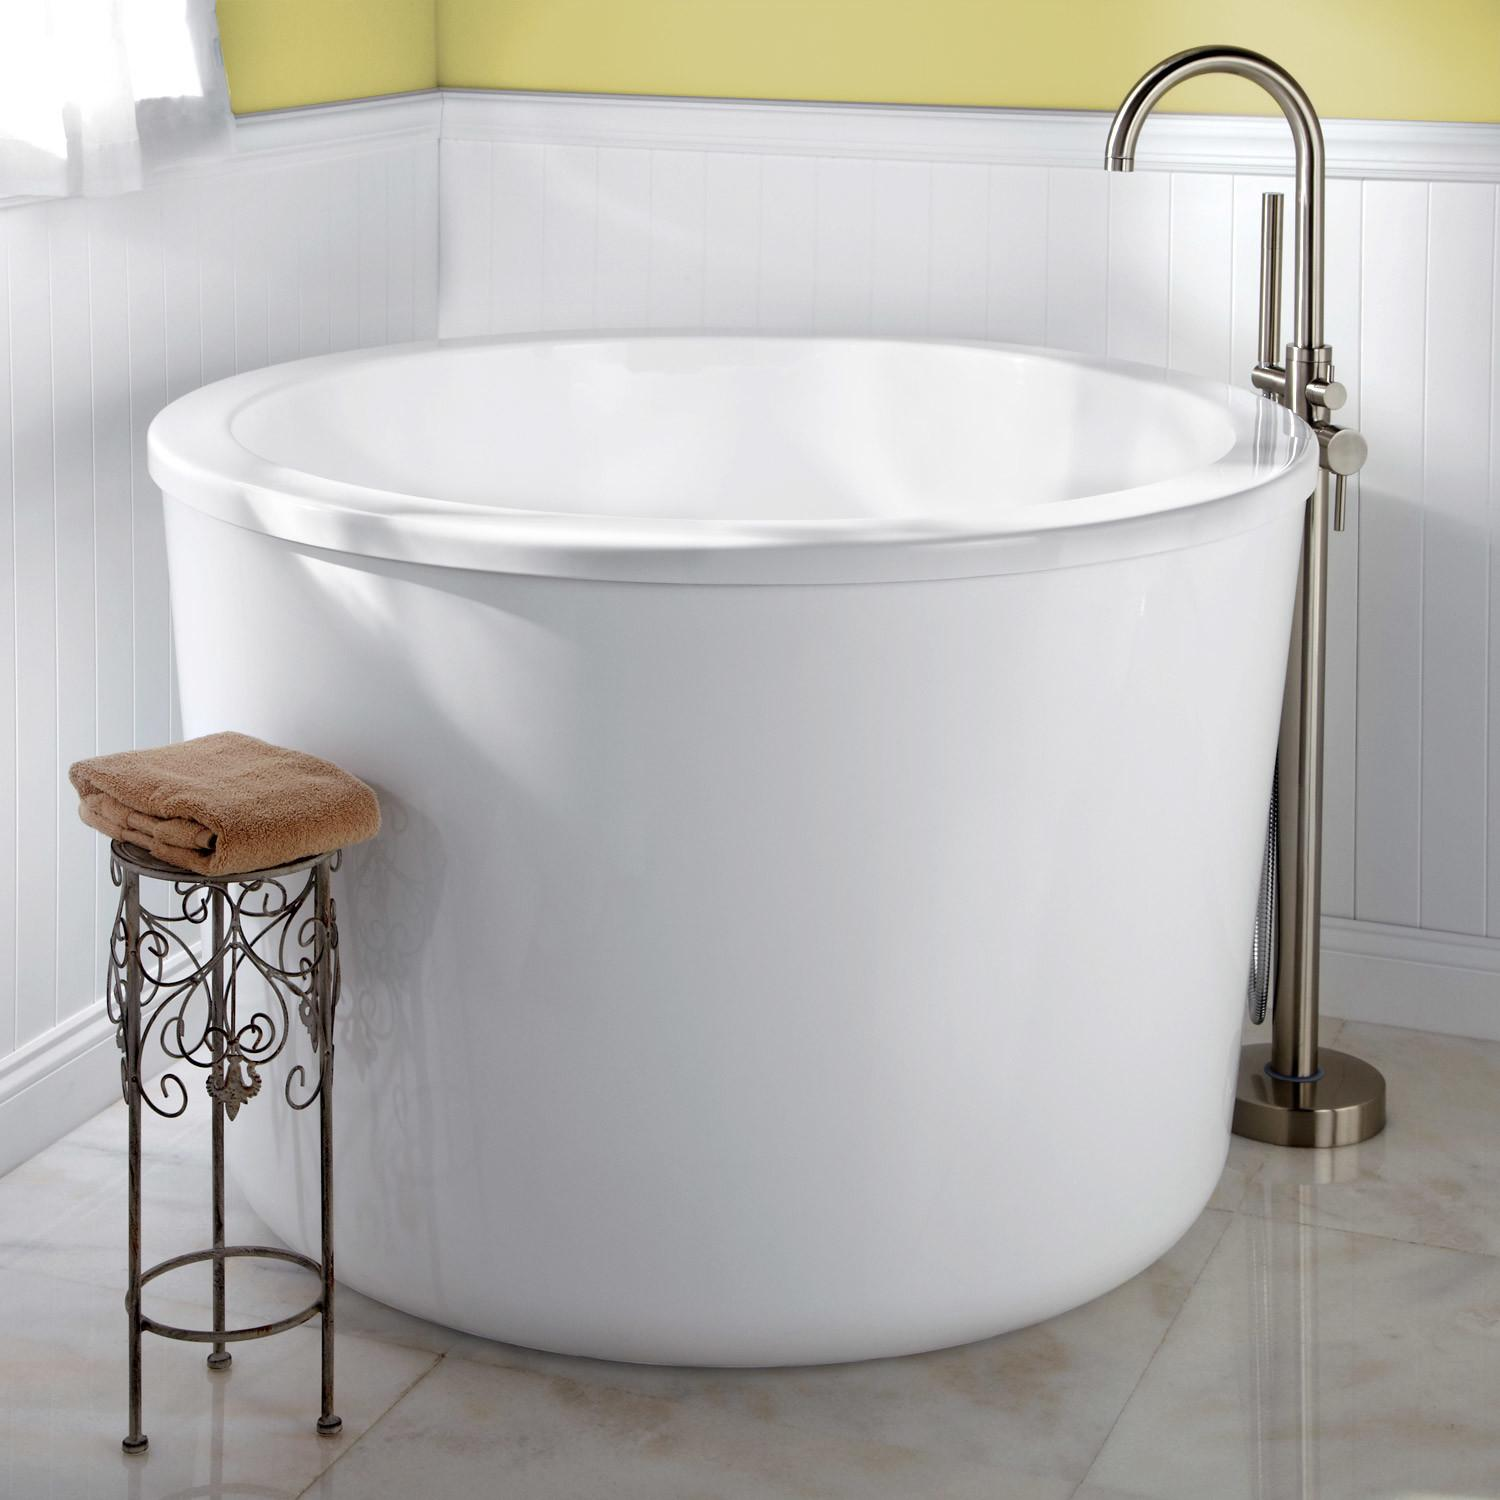 Caruso Round Japanese Soaking Tub Overflow